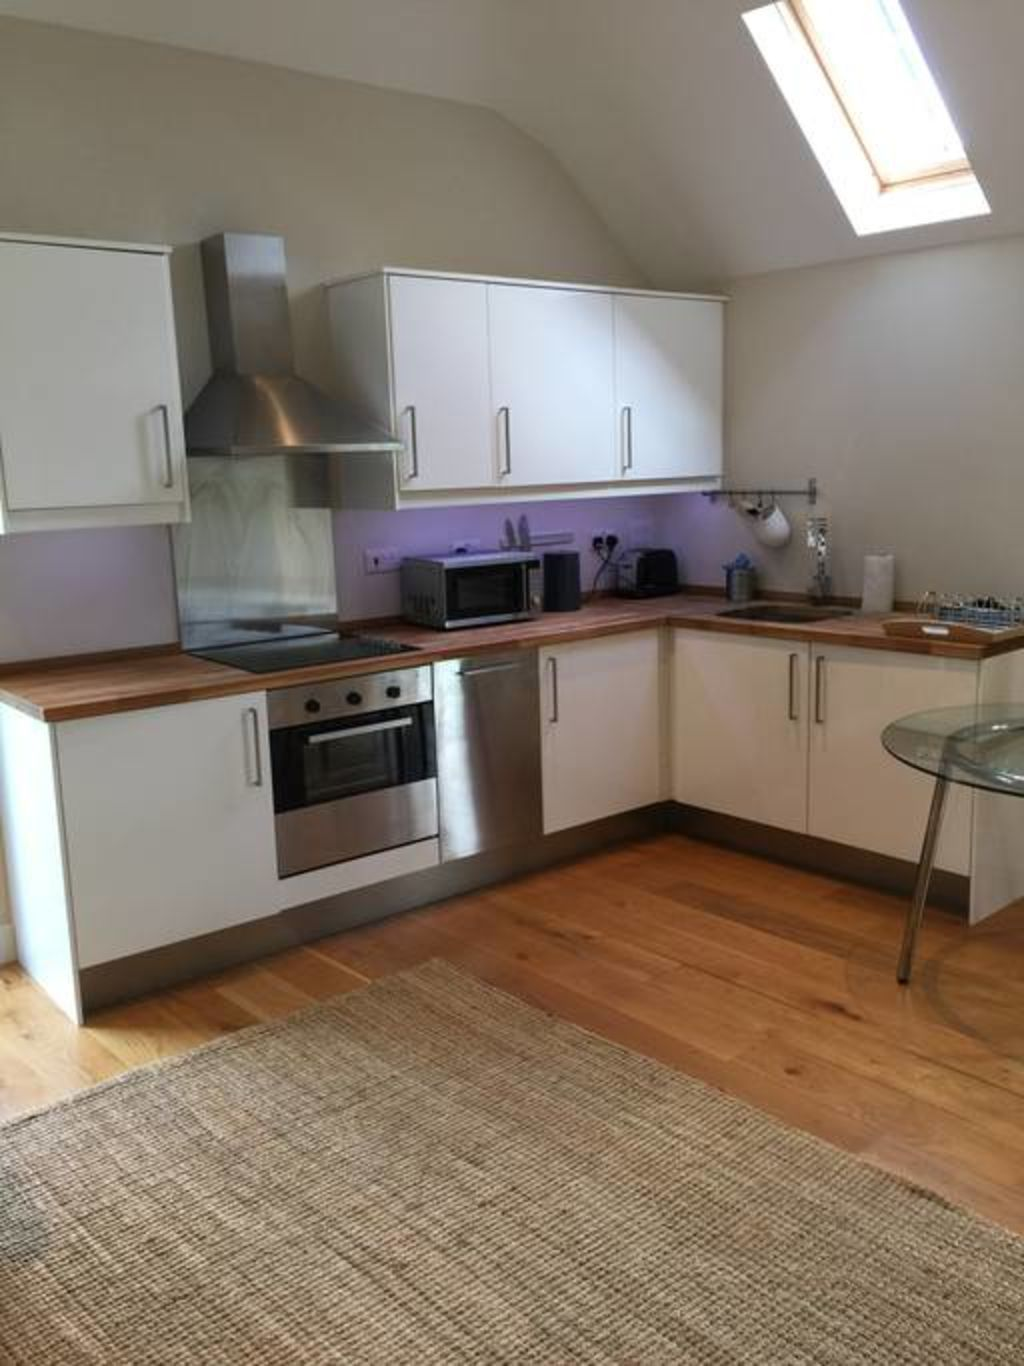 image 5 furnished 1 bedroom Apartment for rent in West Berkshire, Berkshire